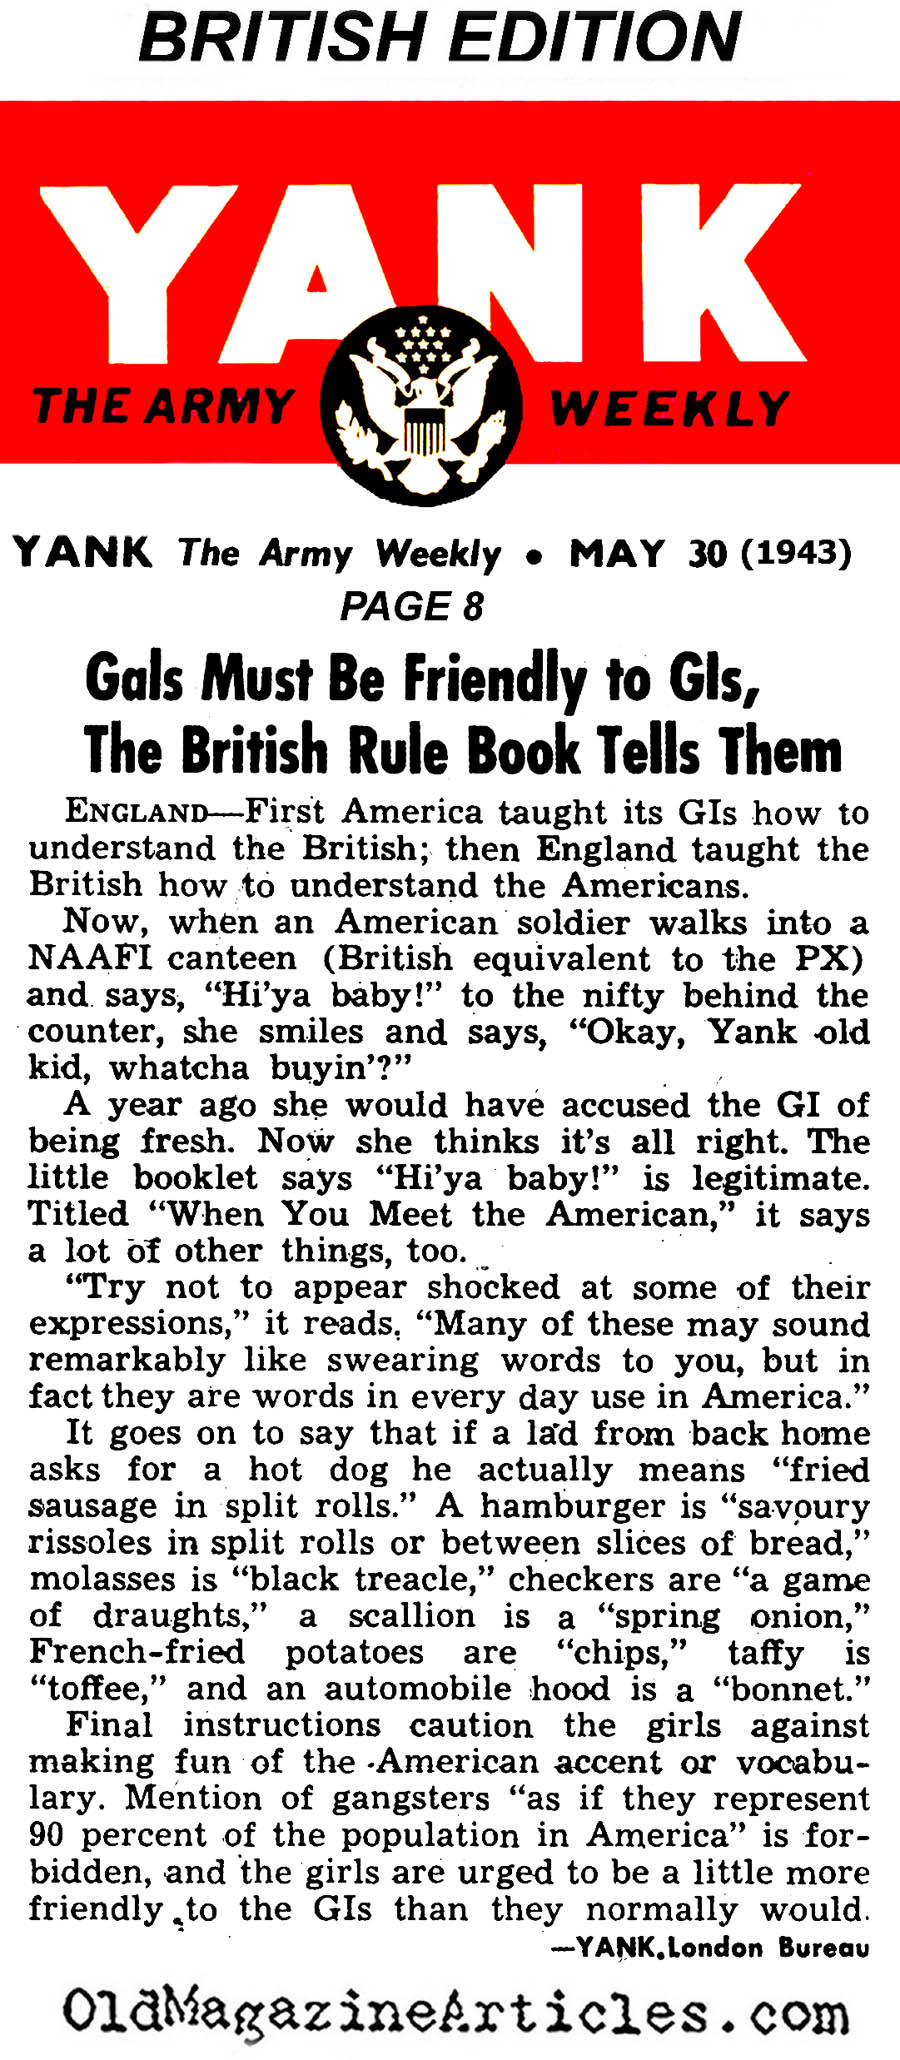 British Women Instructed to Tolerate American Men (Yank Magazine, 1943)